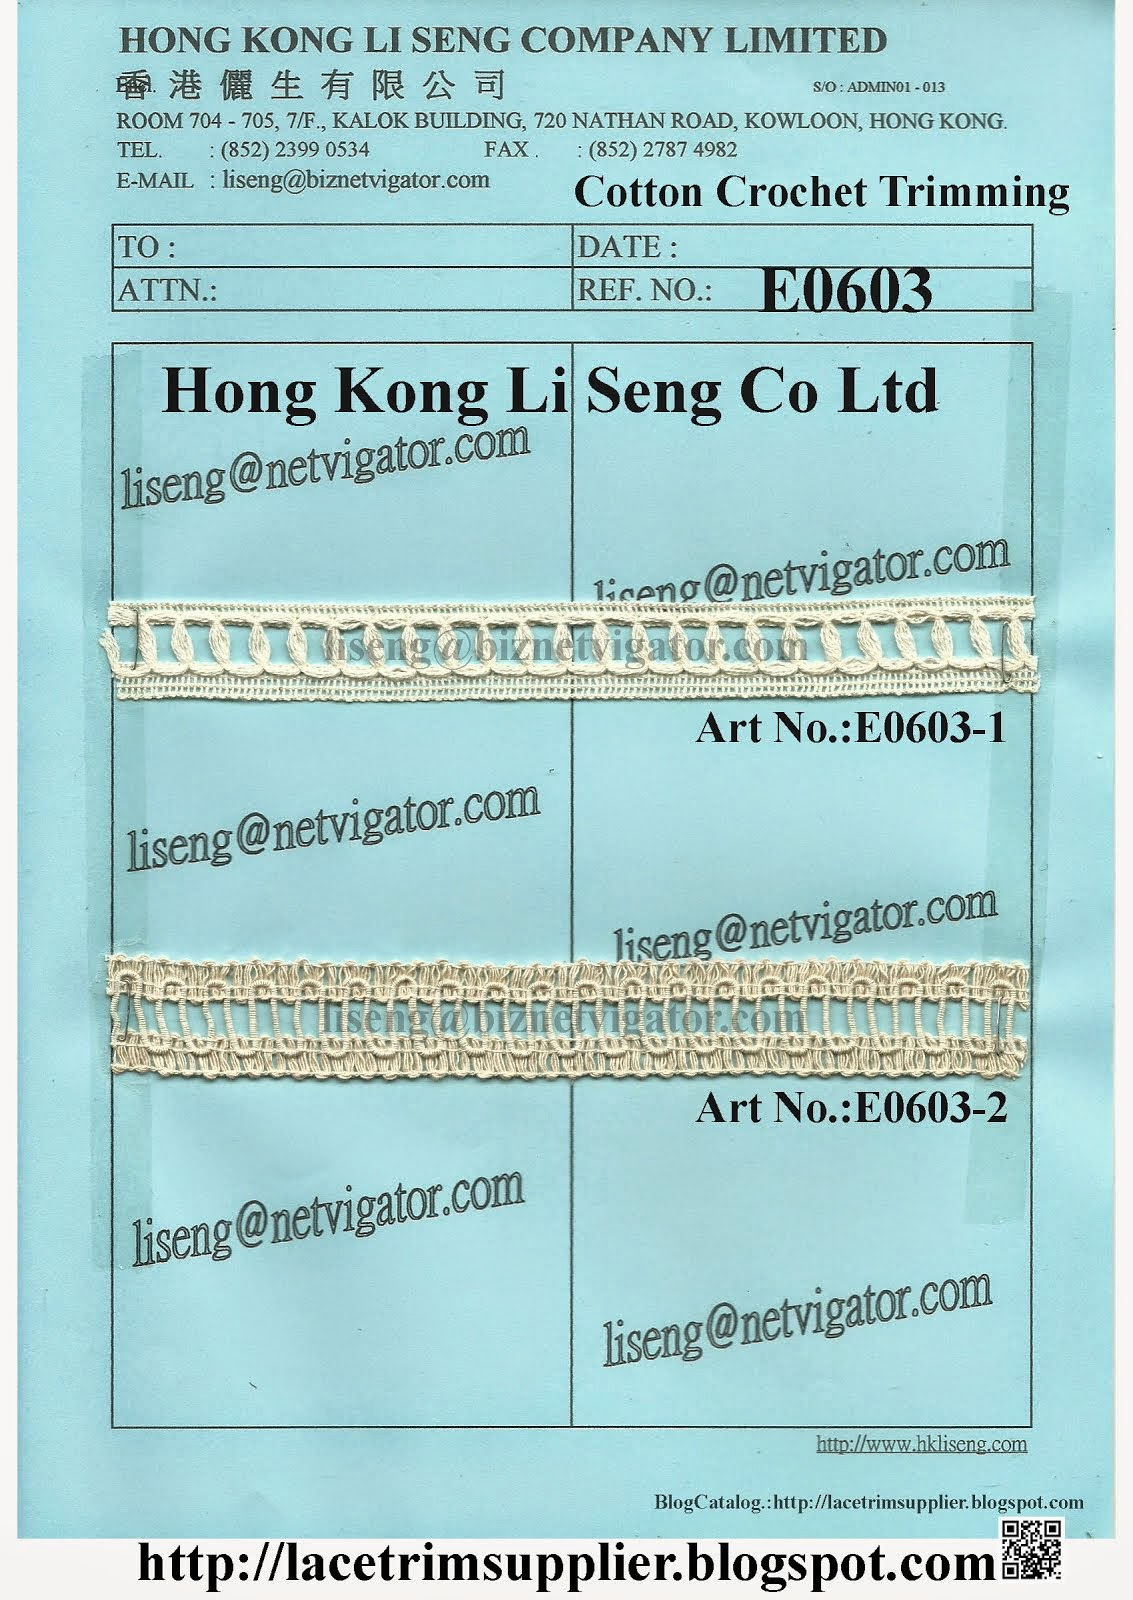 Cotton Crochet Trimming Manufacturer and Supplier - Hong Kong Li Seng Co Ltd